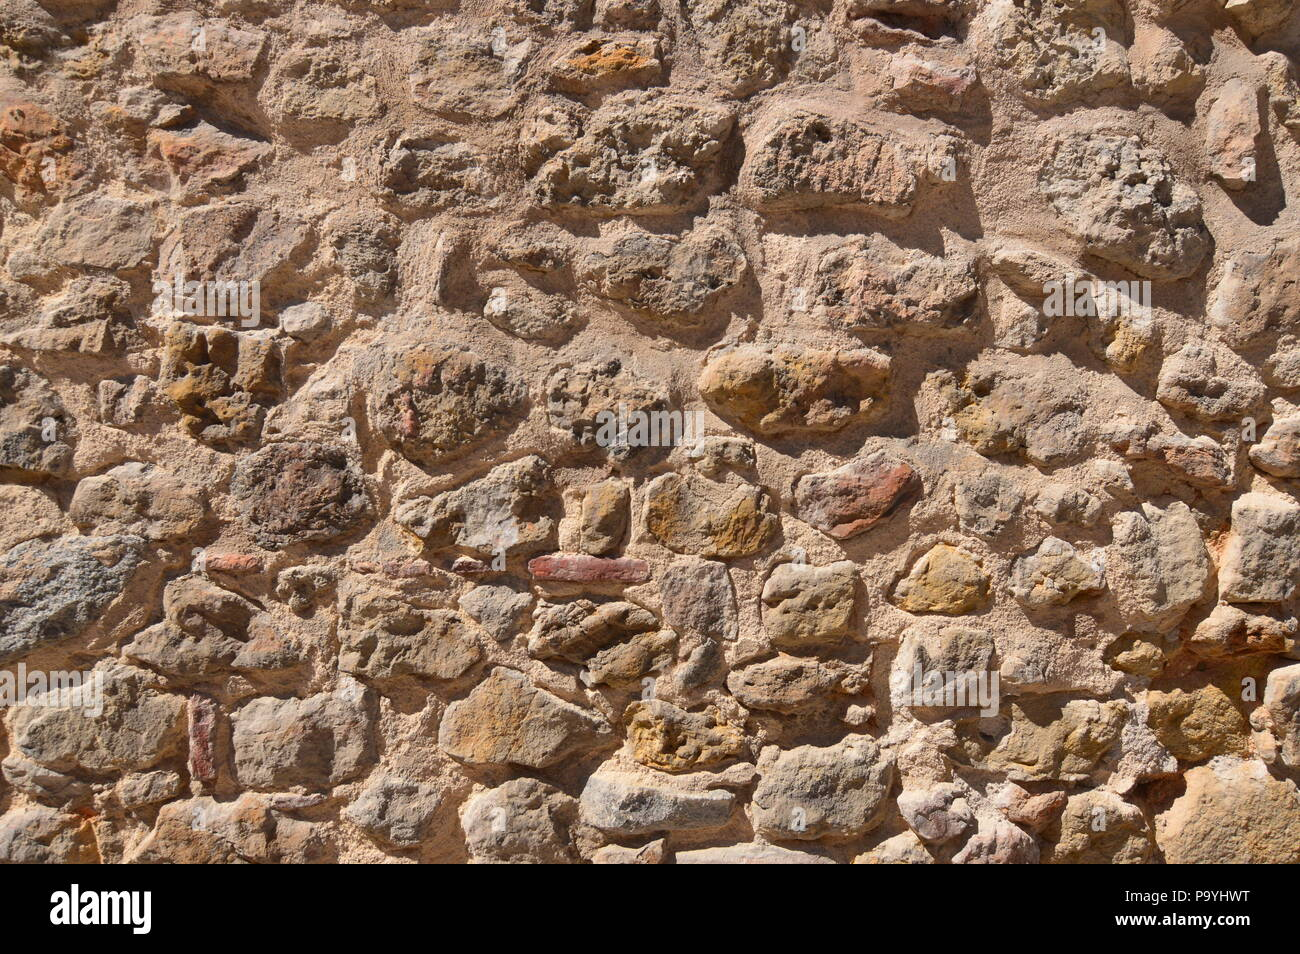 Wall Of Stones For Use Of Screensaver Or Background. Wallpapers Art Screensaver. - Stock Image